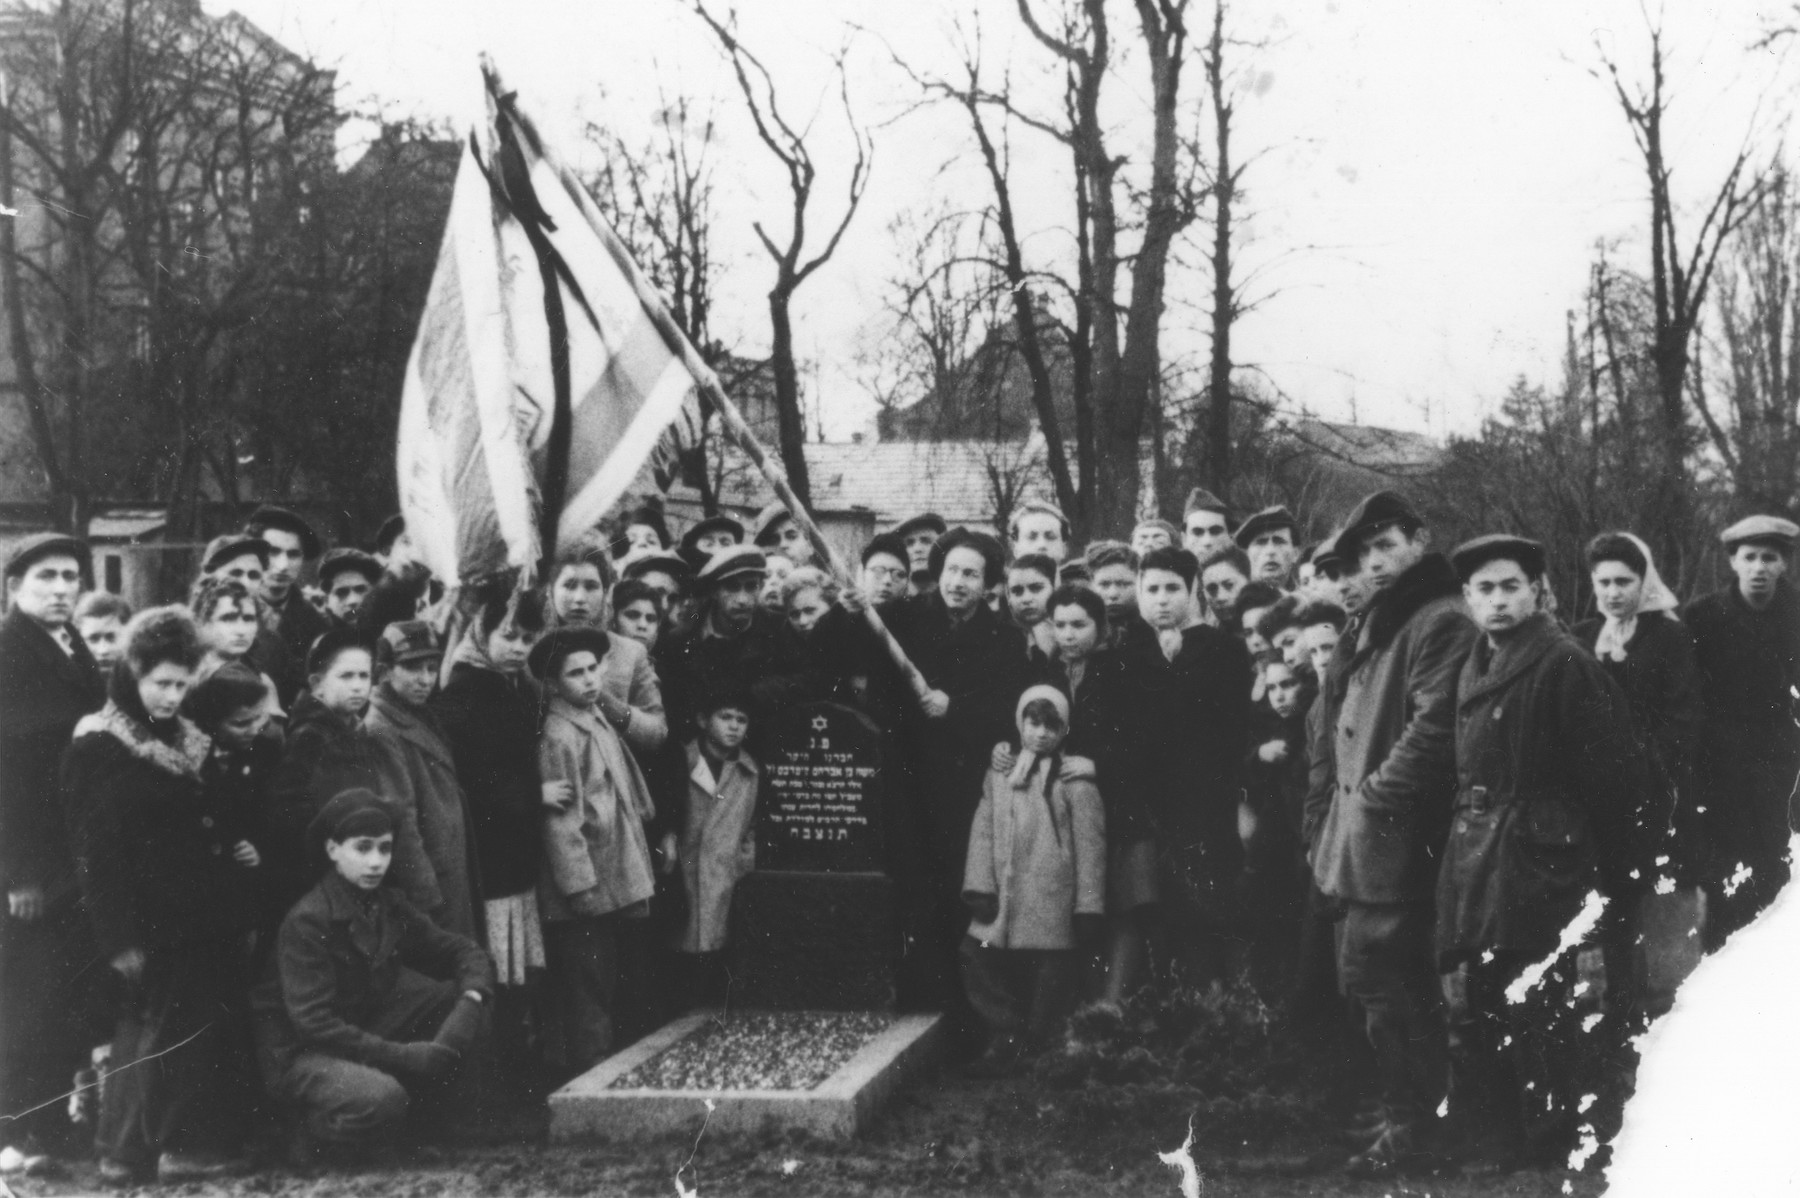 Former passengers on the Exodus 1947 gather around the grave of a comrade who died [probably in the Jewish cemetery of Luebeck].